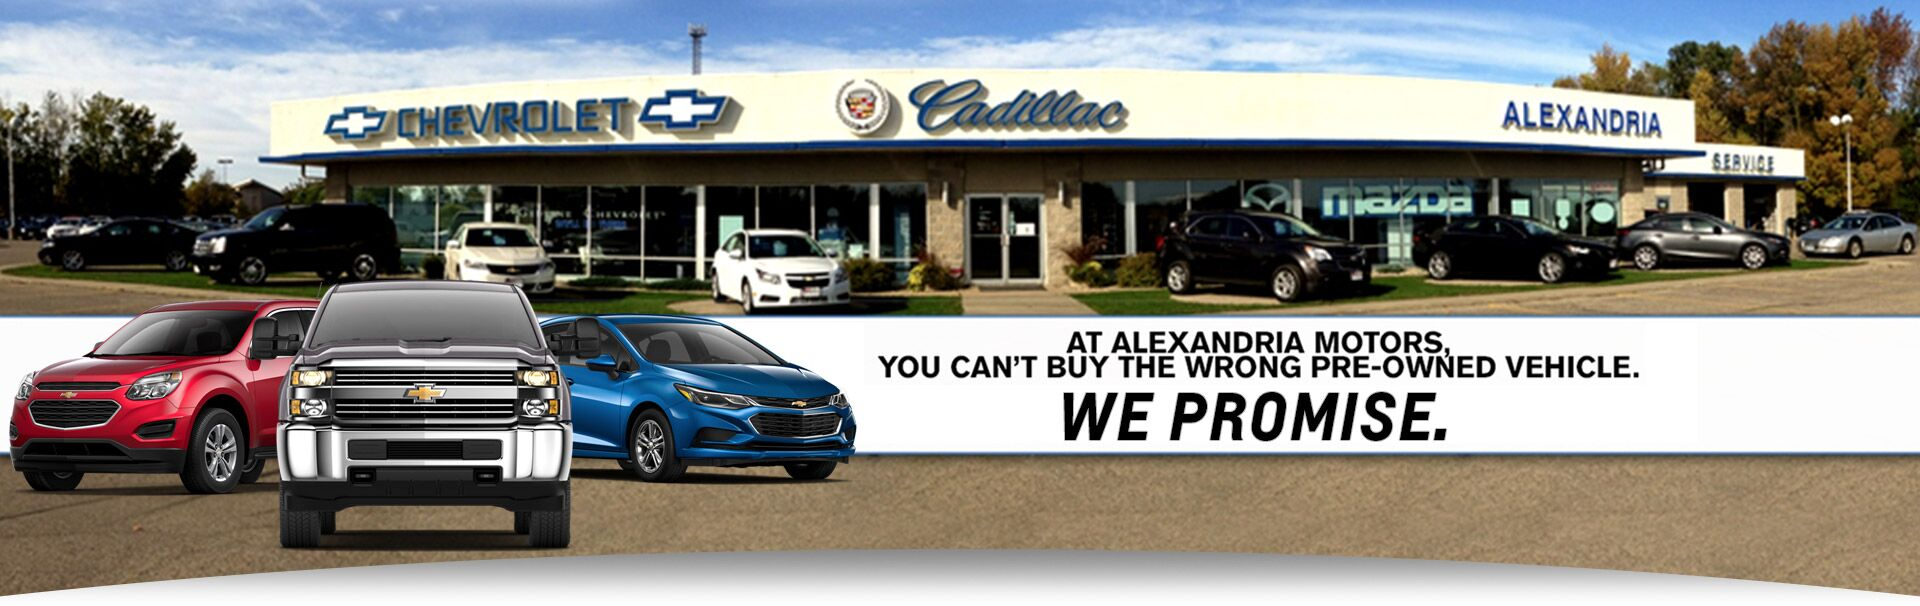 Alexandria Mn New Cadillac Chevrolet Mazda Used Car